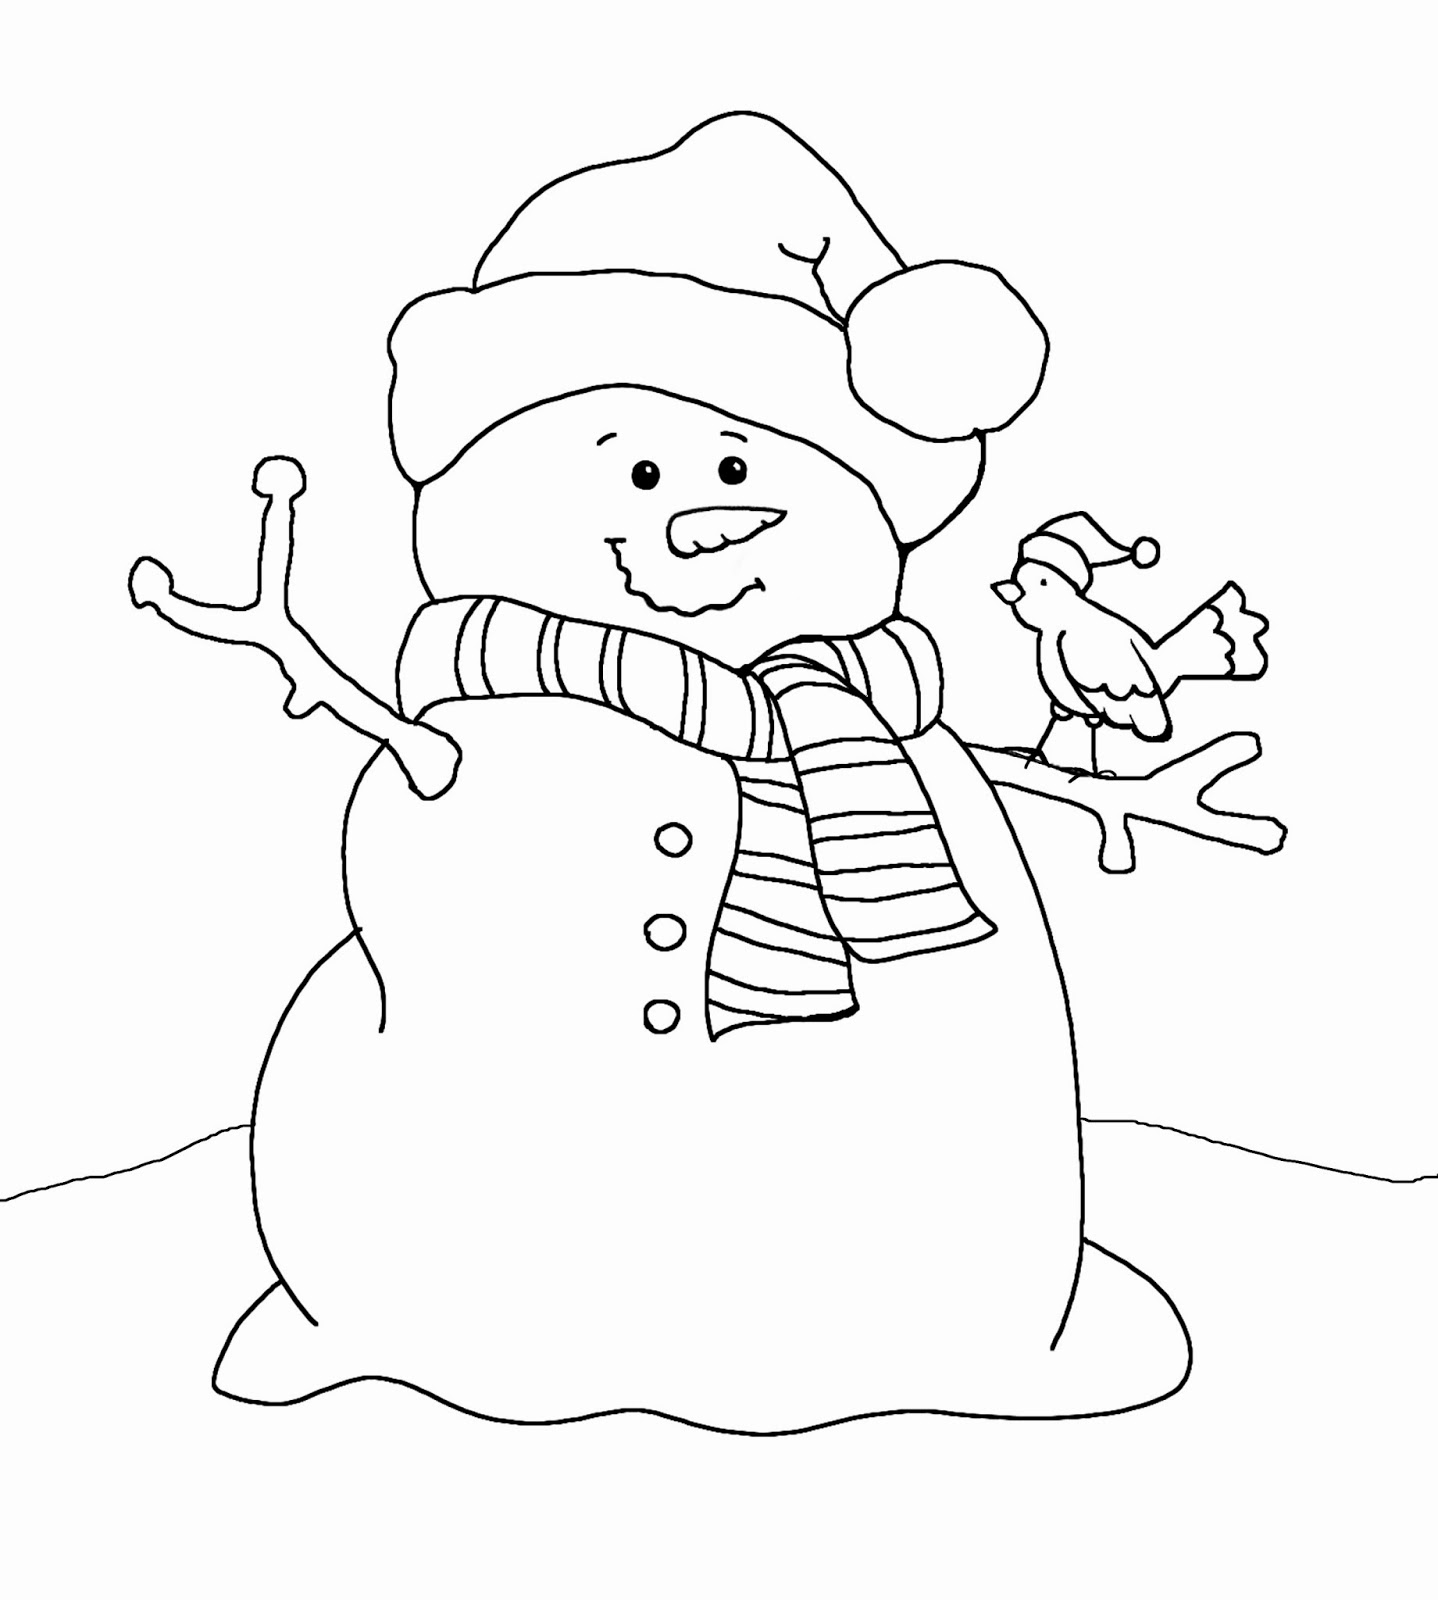 Free Coloring Pages Of The Snowman Is White Snowman Coloring Pages Free